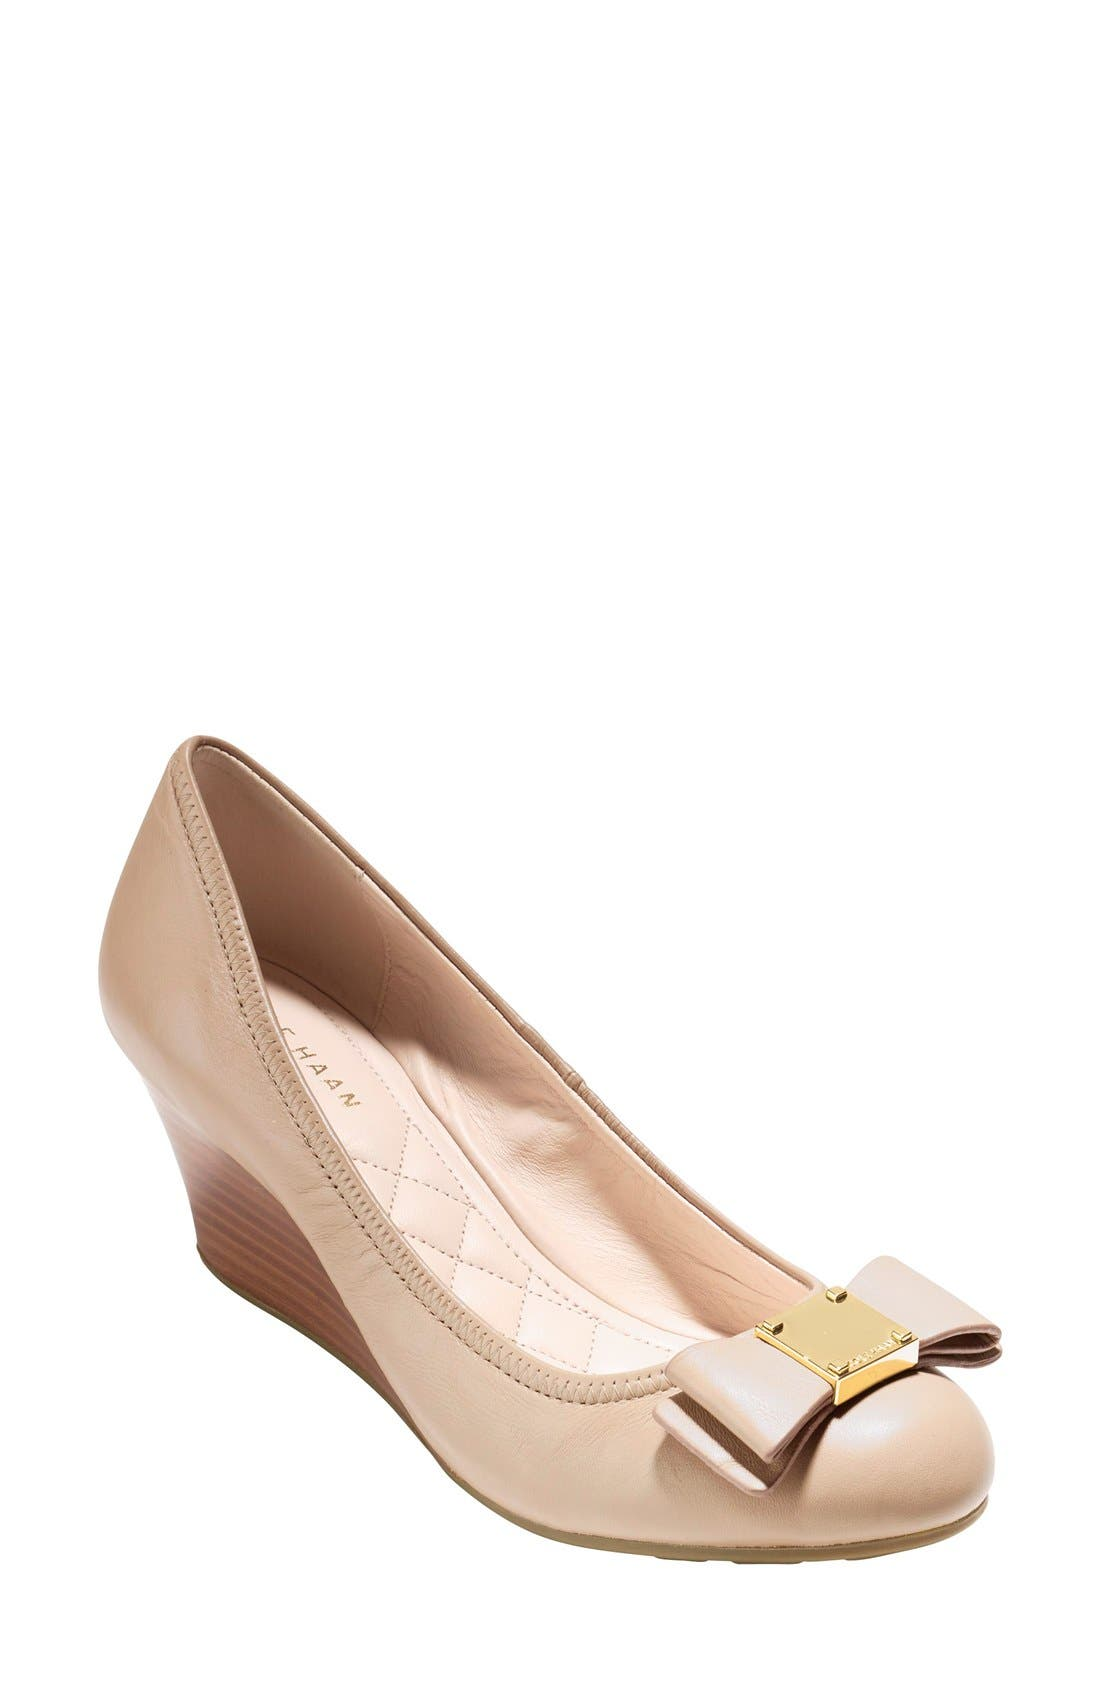 Alternate Image 1 Selected - Cole Haan 'Tali Grand' Bow Wedge Pump (Women)